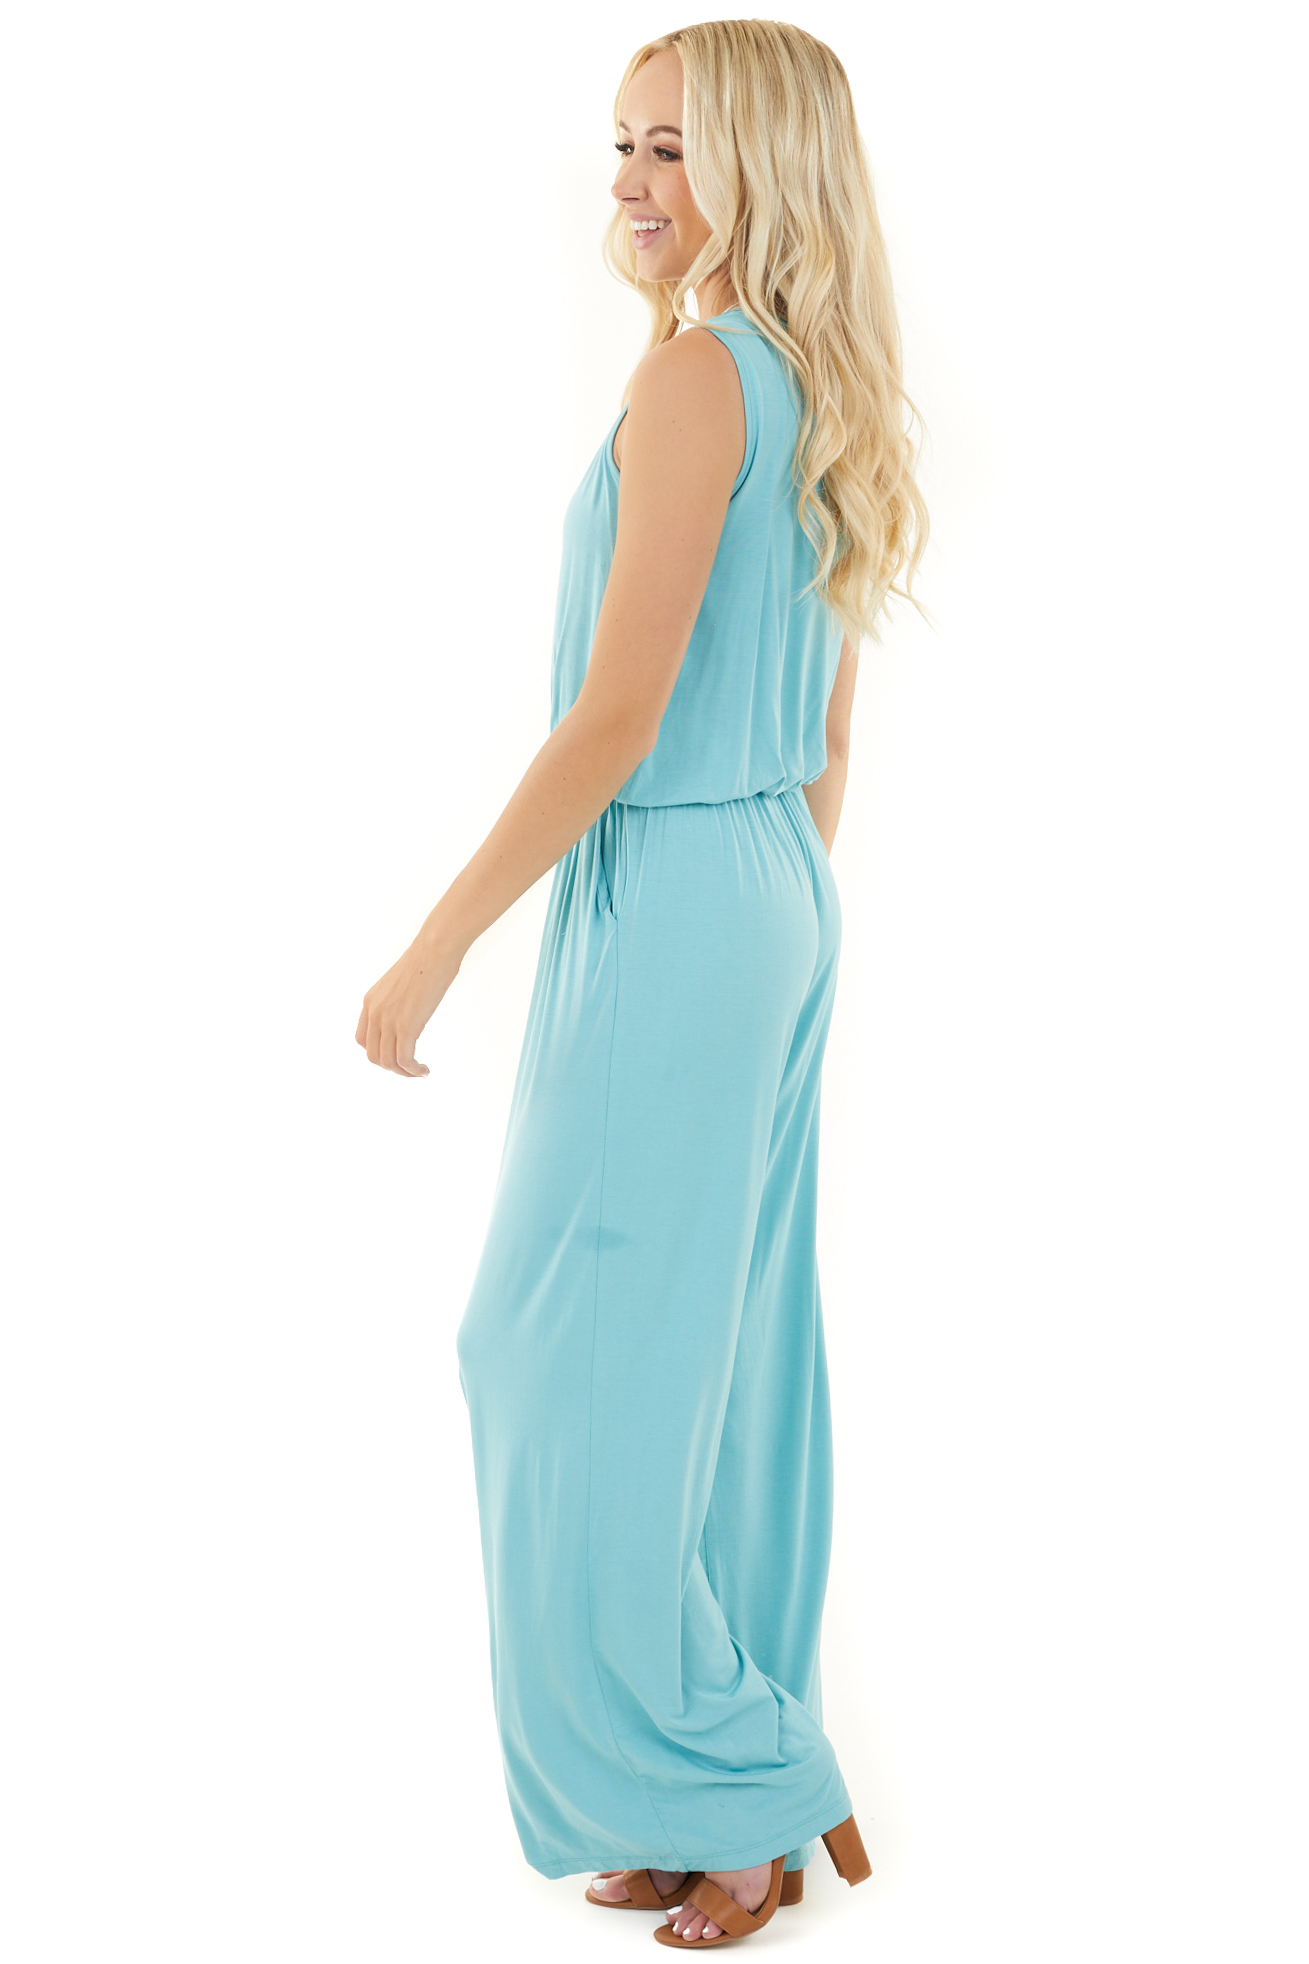 Turquoise Blue Sleeveless Jumpsuit with Waist Tie and Pocket